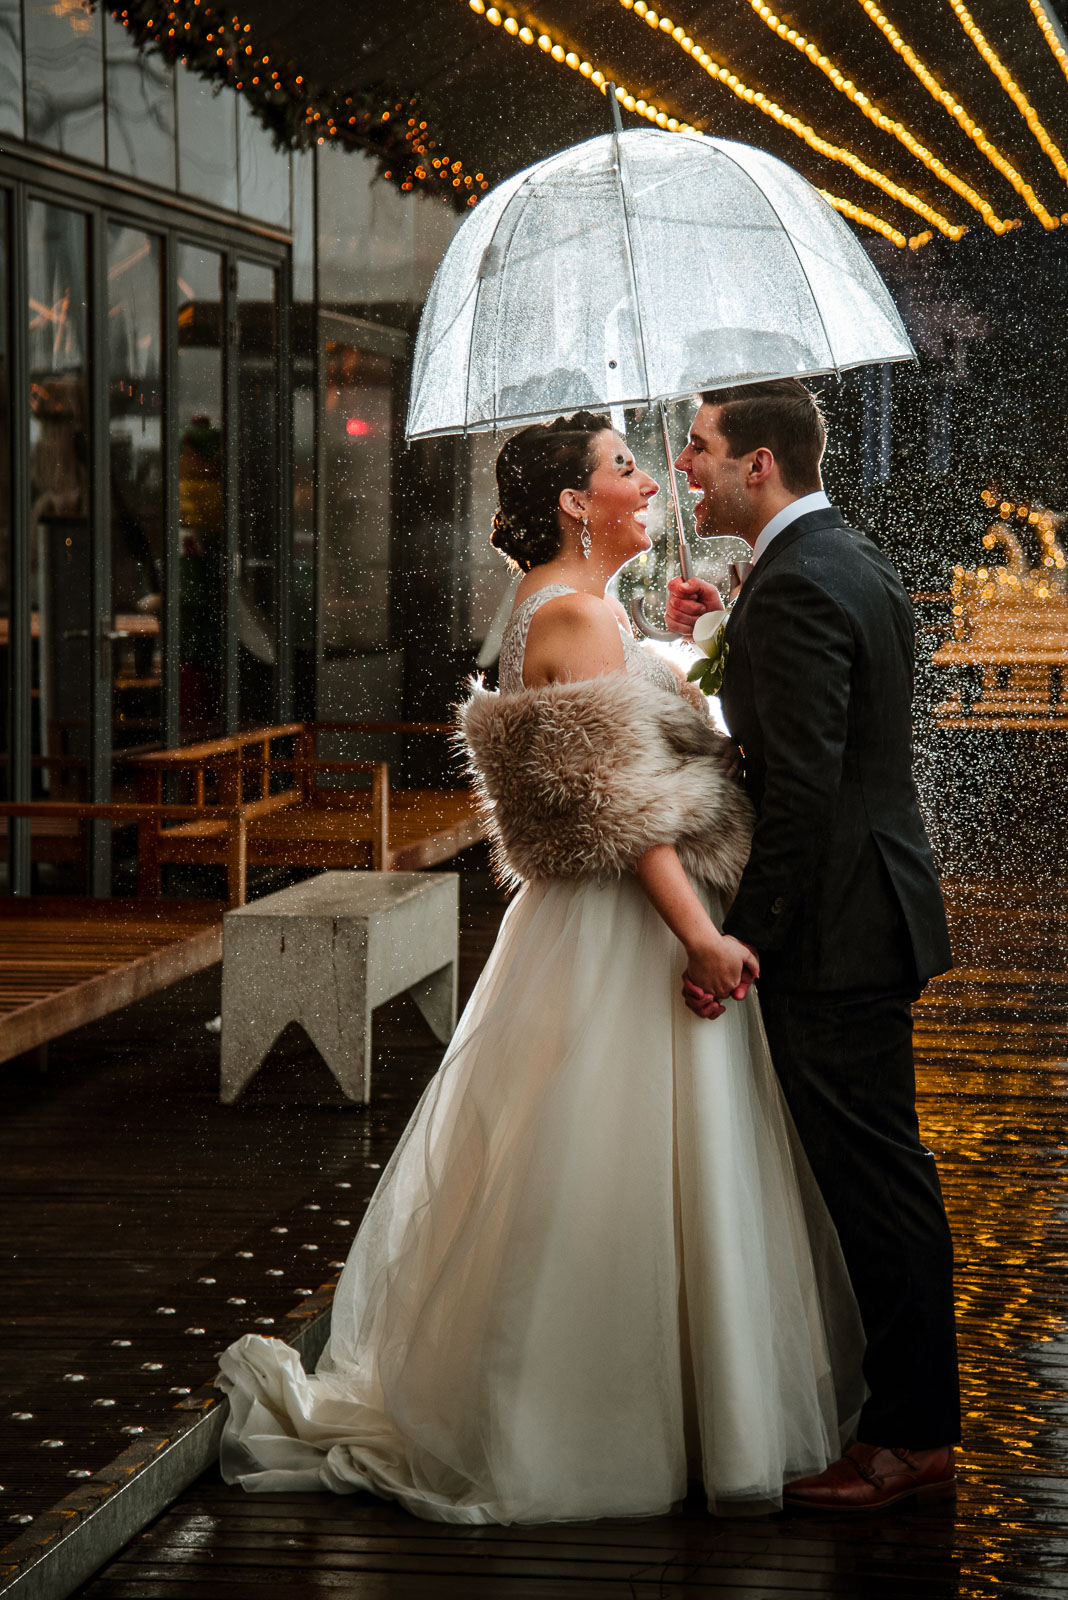 Bride and groom portrait in the rain with umbrella